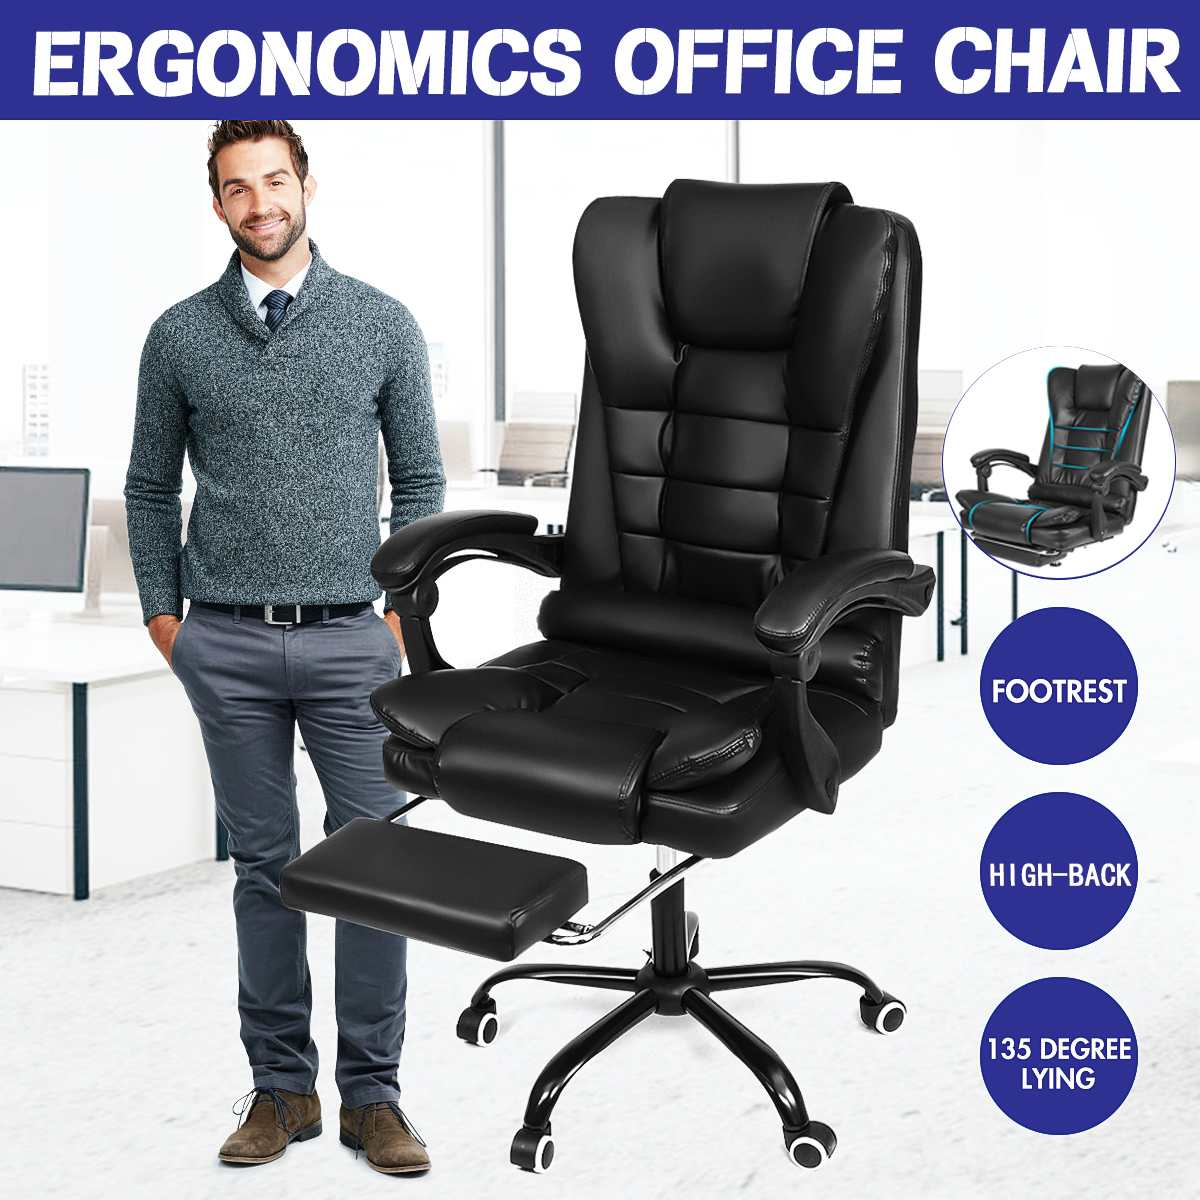 H38823e01842f4347ac7b475762e1ae78k - Office Chair WCG Computer Gaming Chair Reclining Armchair with Footrest Internet Cafe Gamer Chair Office Furniture Pink Chair